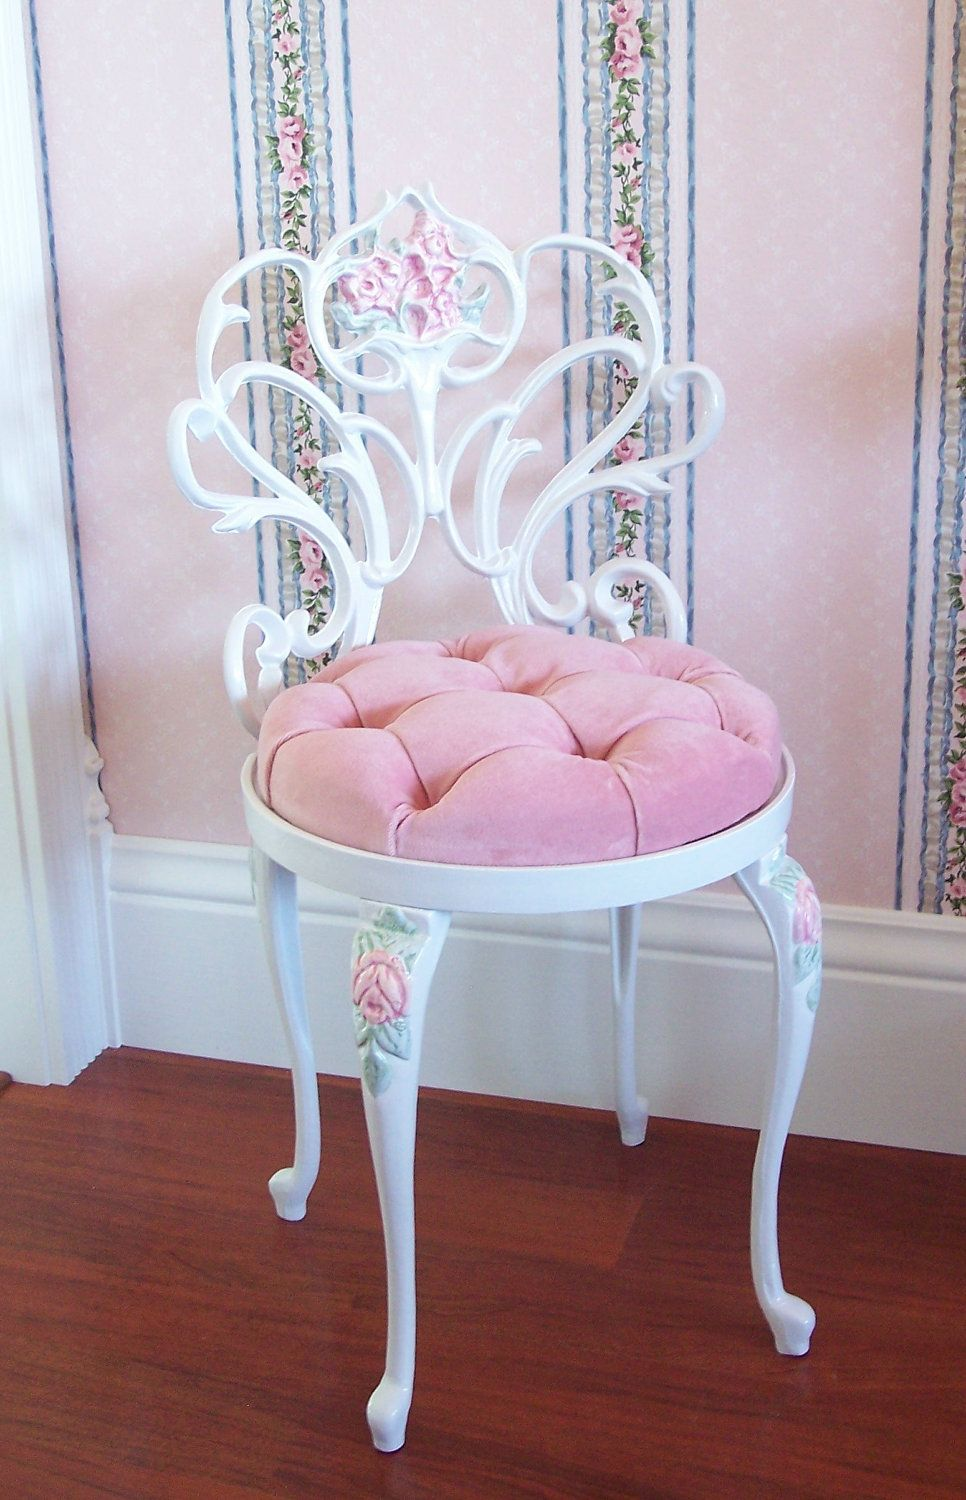 Superbe Vintage White Scrolly Boudoir Vanity Chair Stool With Hand Painted Pink  Roses Pink Velvet Seat Cushion. $359.99, Via Etsy.